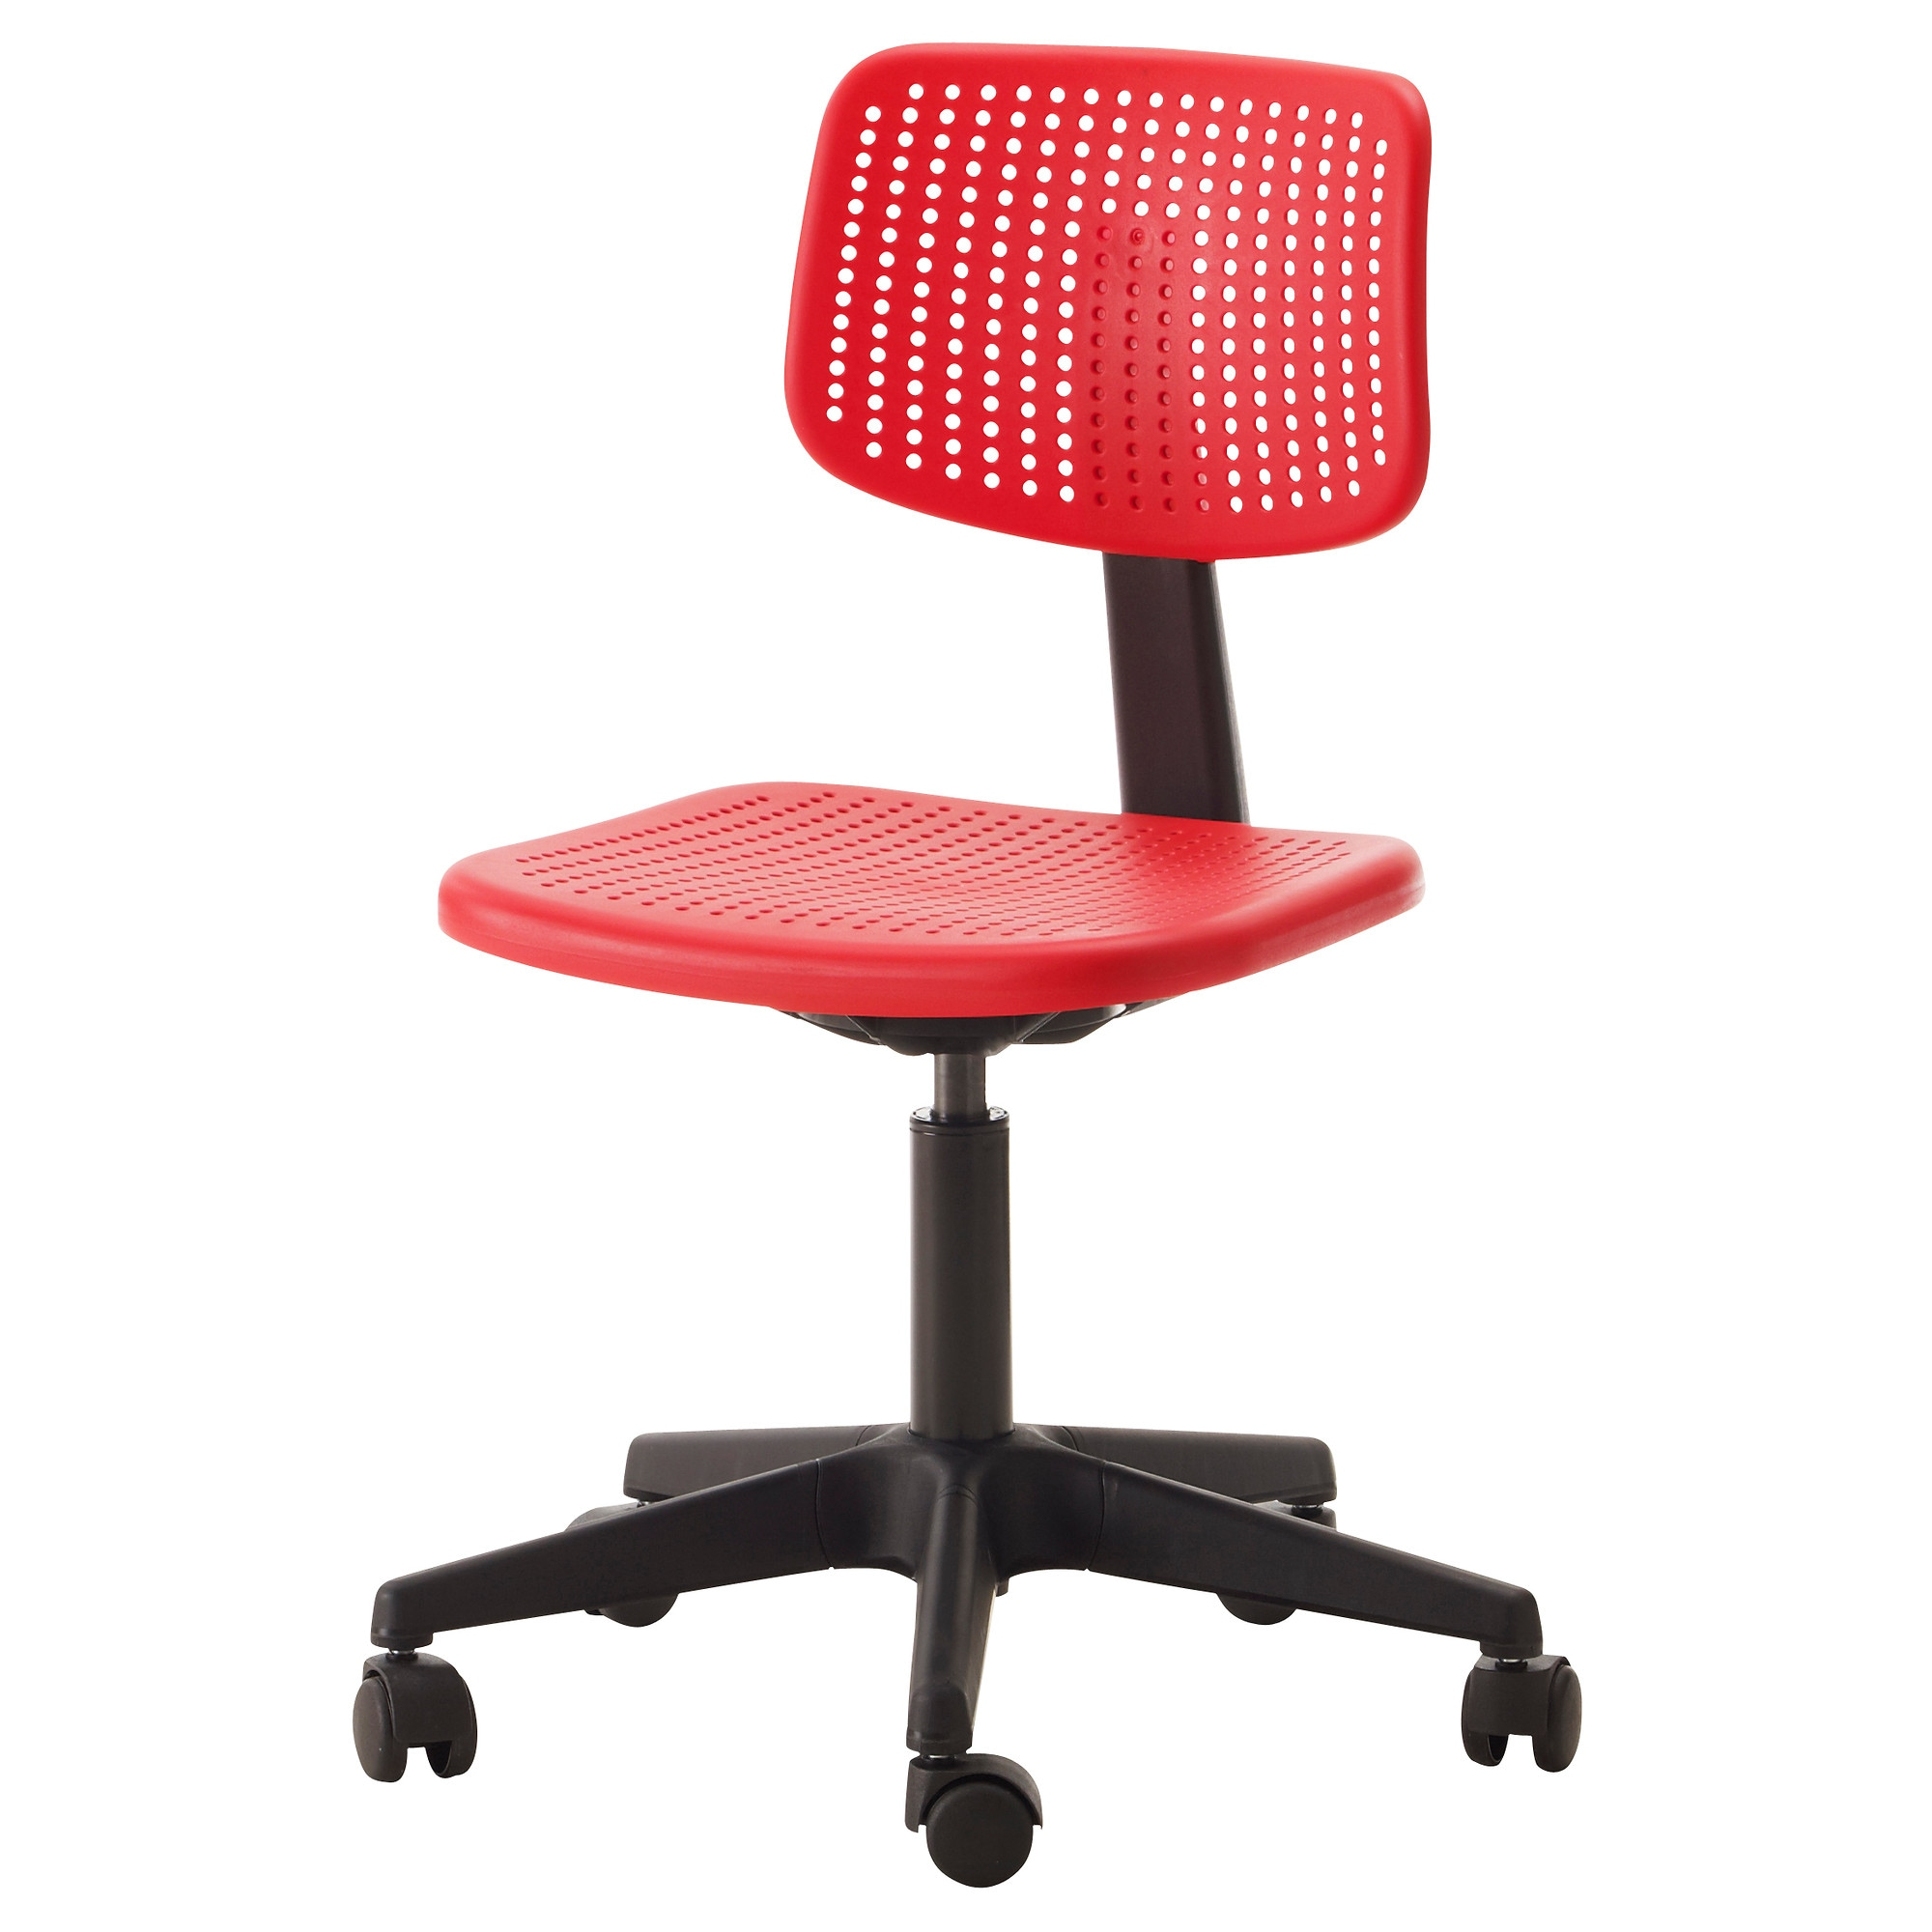 red office pin more home chairs desk at check chair furniture